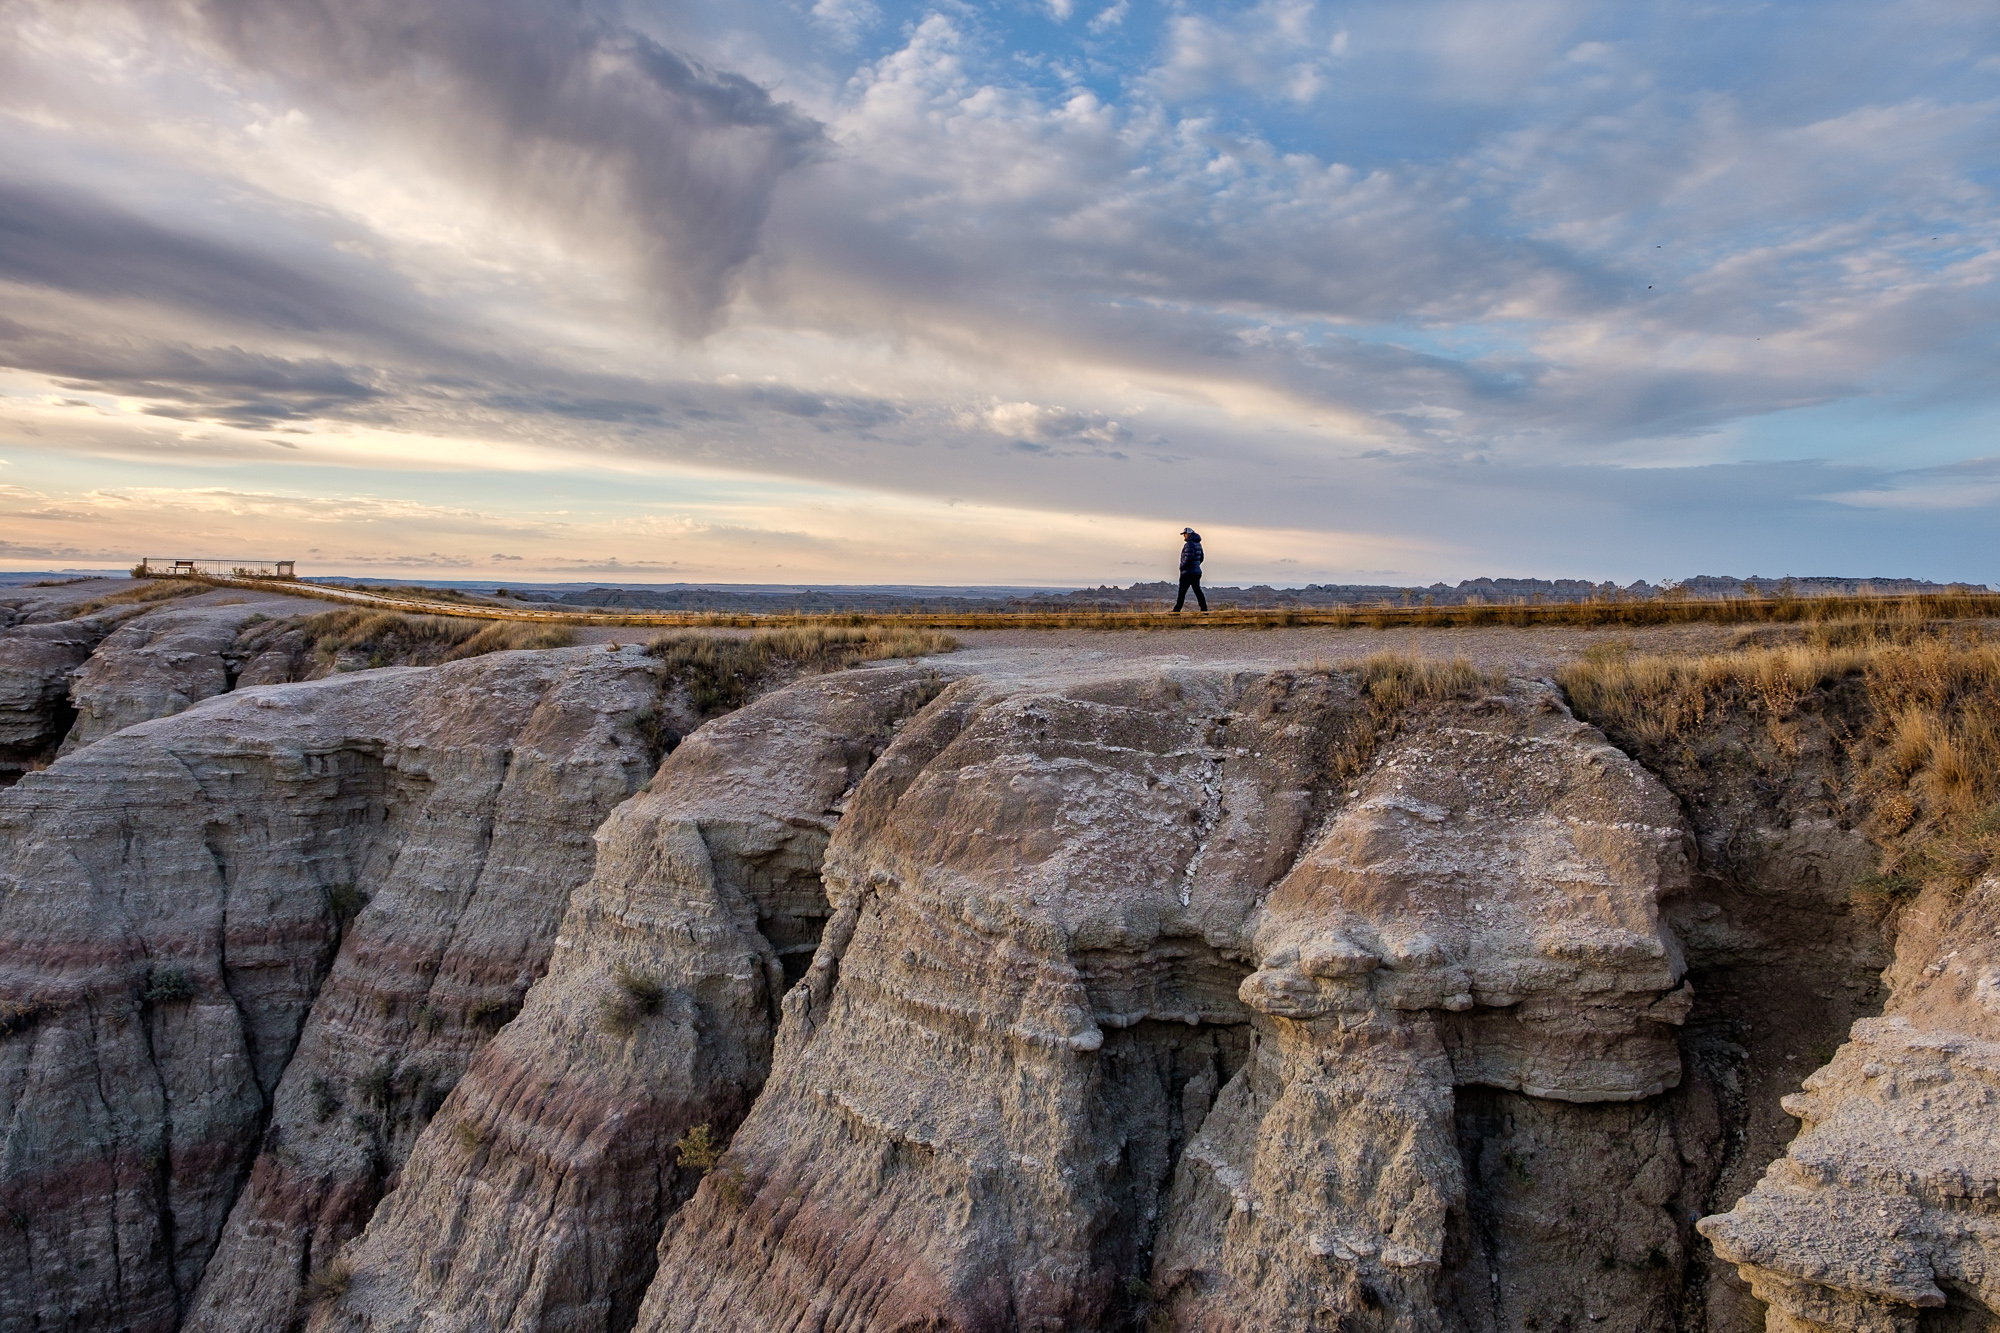 Badlands National Park - 026.jpg